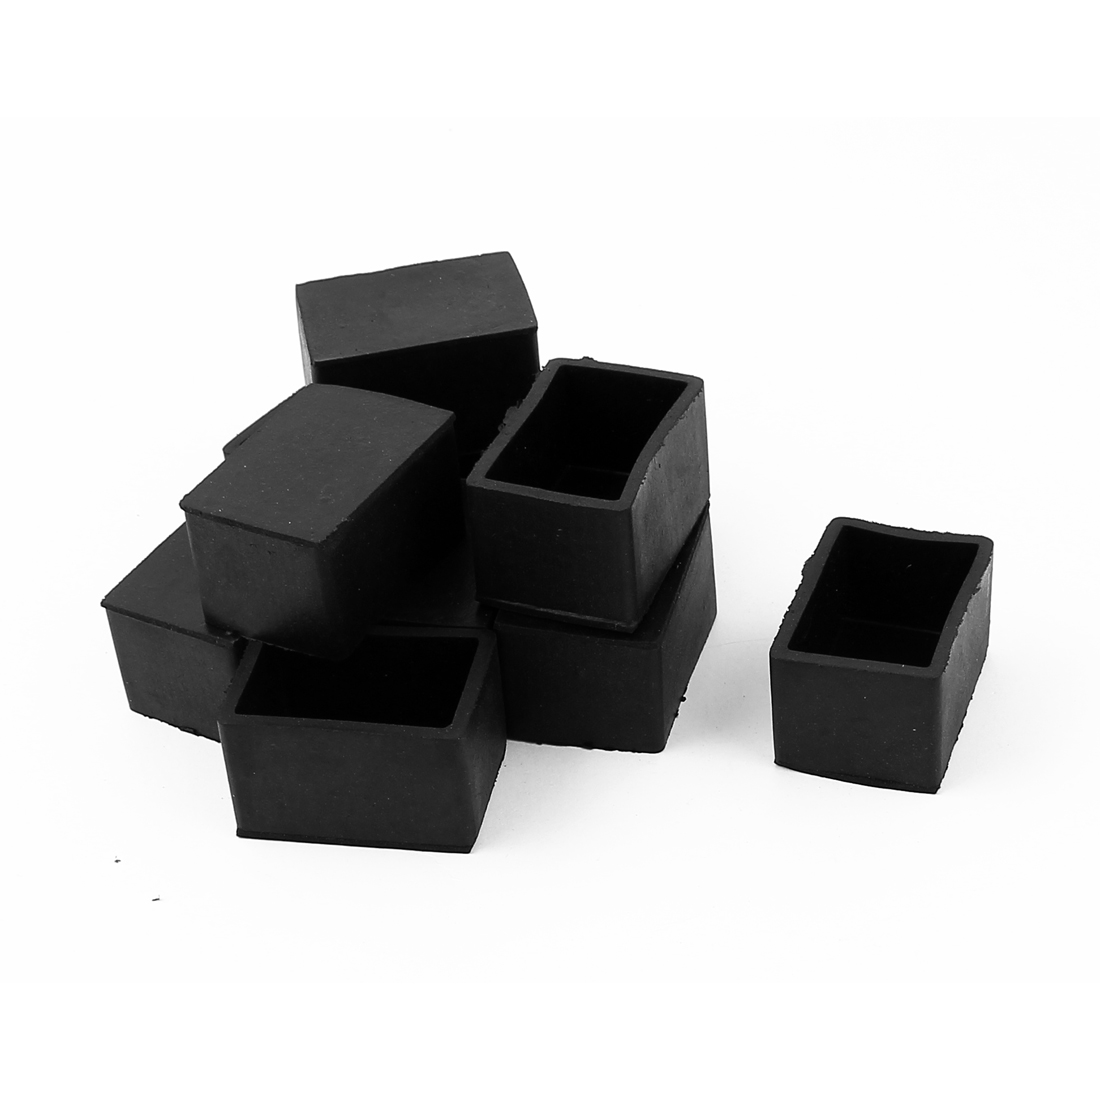 10 Pcs Black Rectangle Chair Table Leg Foot Rubber Covers Protectors 38mm x 24mm